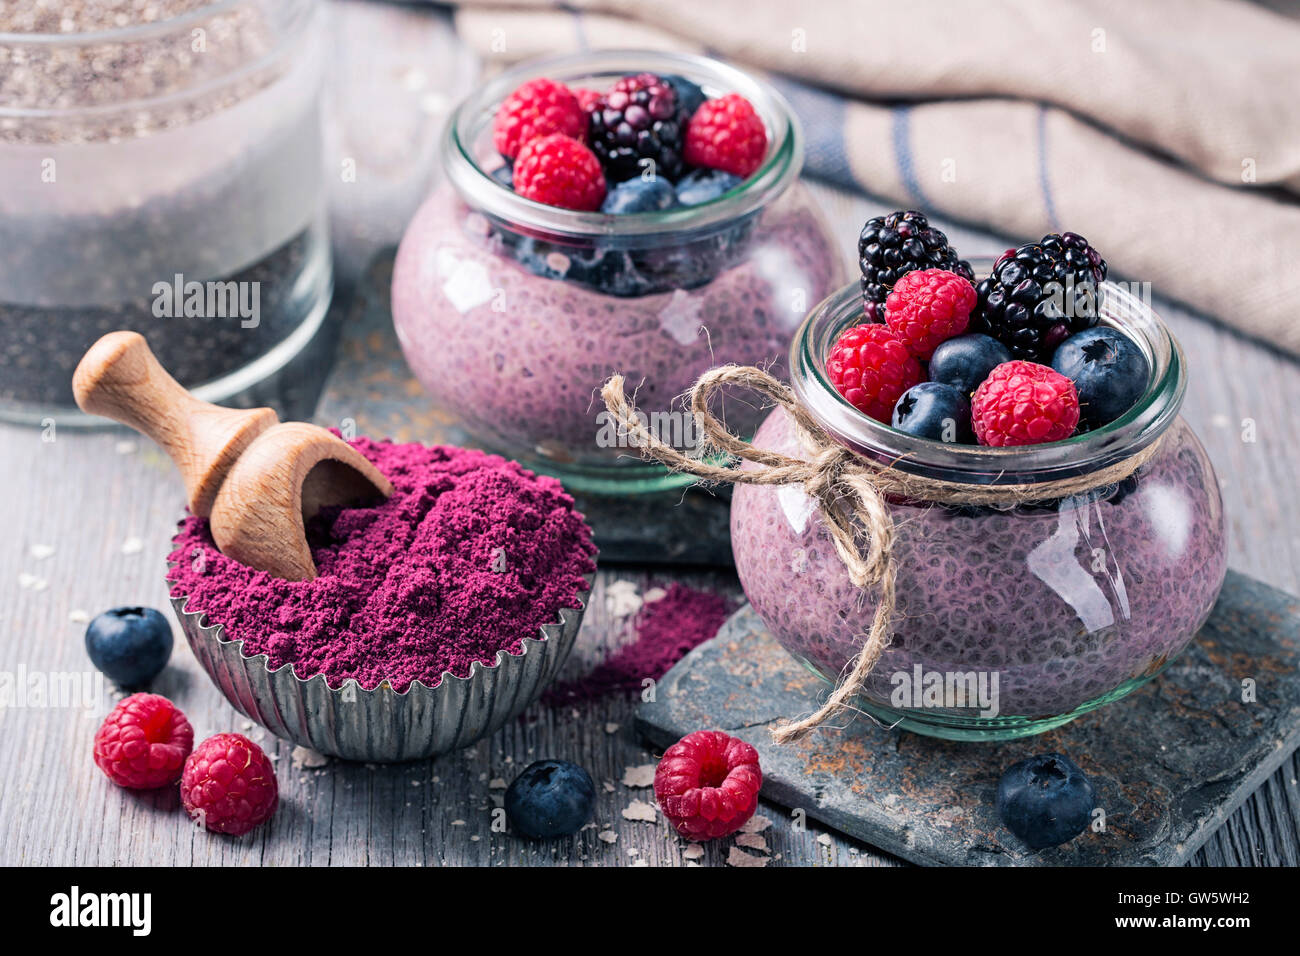 Chia seeds acai pudding with berries - Stock Image